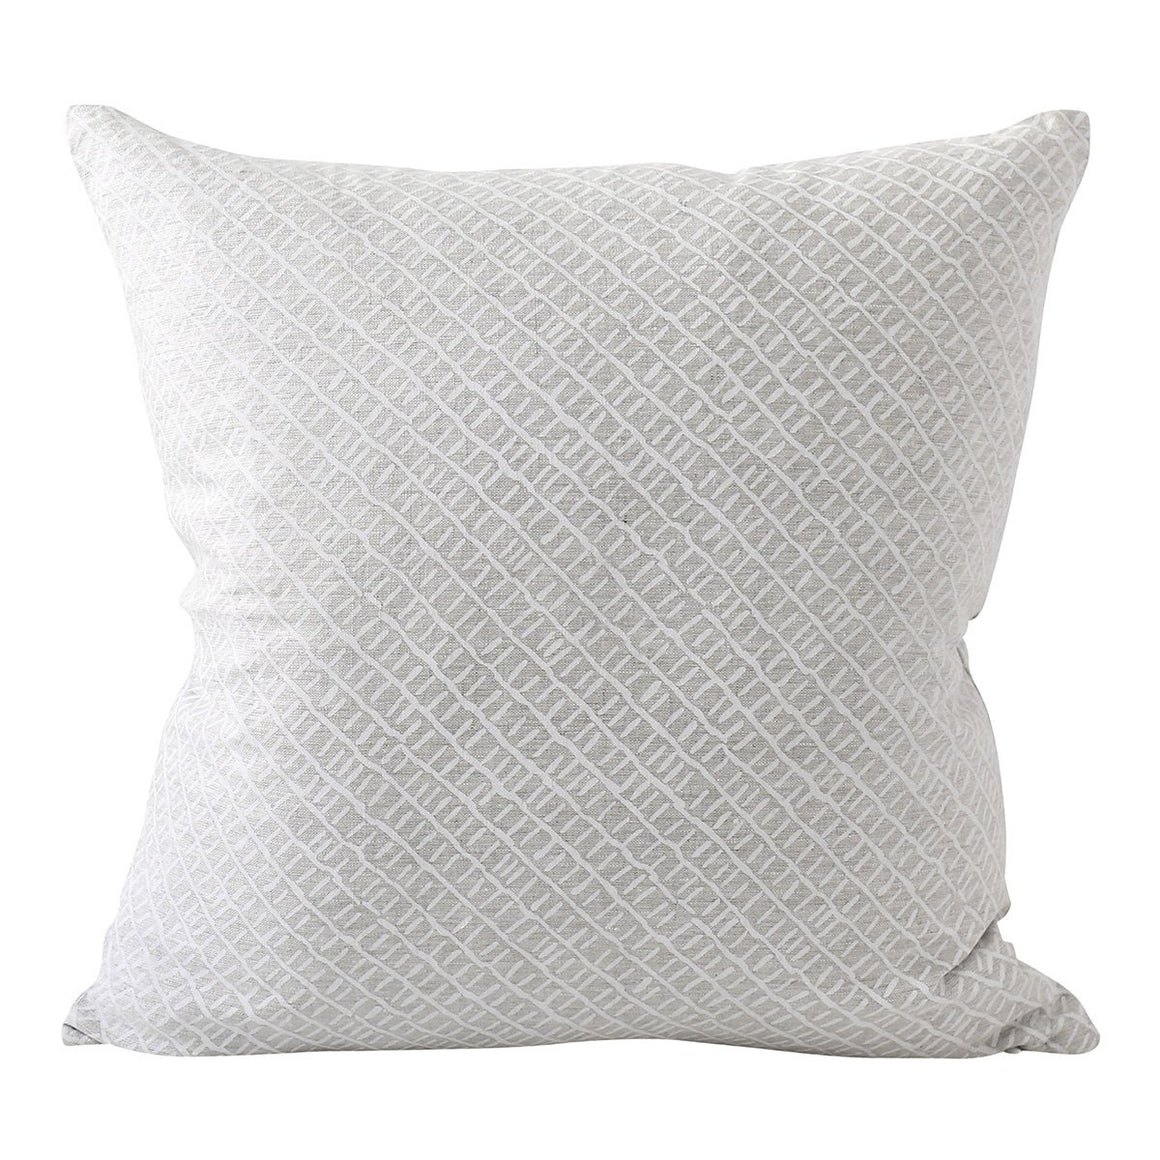 Sonora Chalk Cushion 50cm